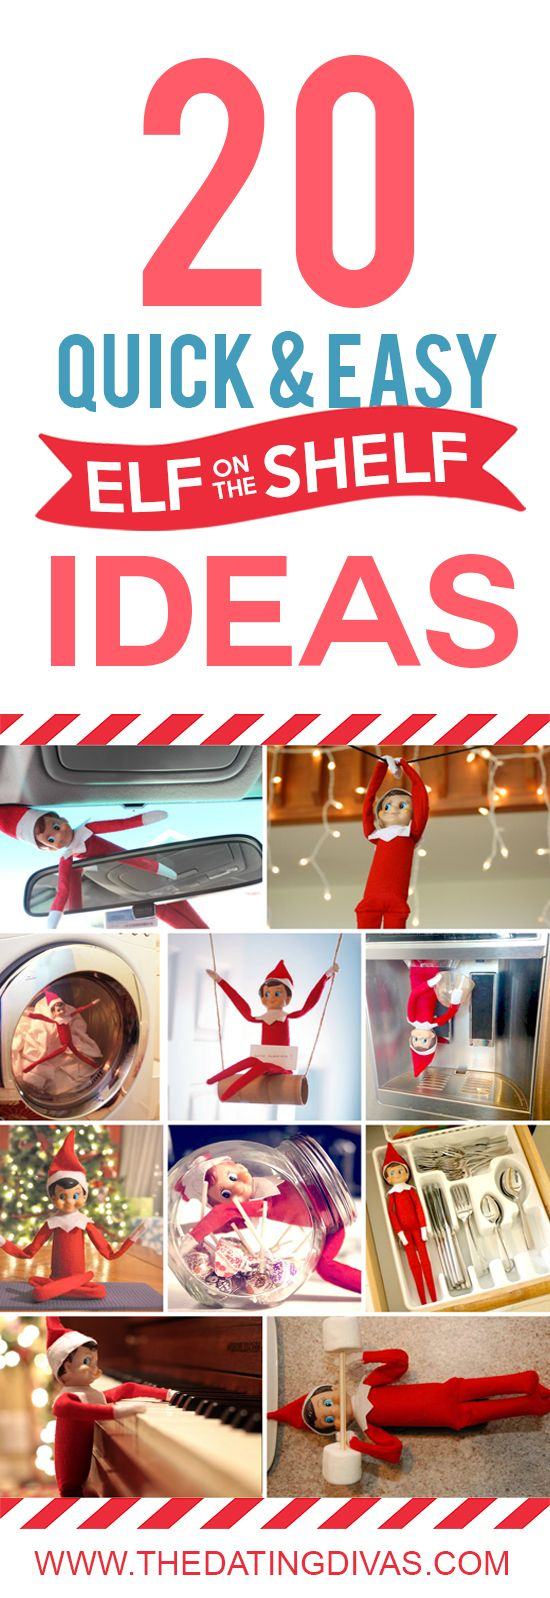 Elf on the Shelf Ideas - Creative and Funny Ideas from The Dating Divas